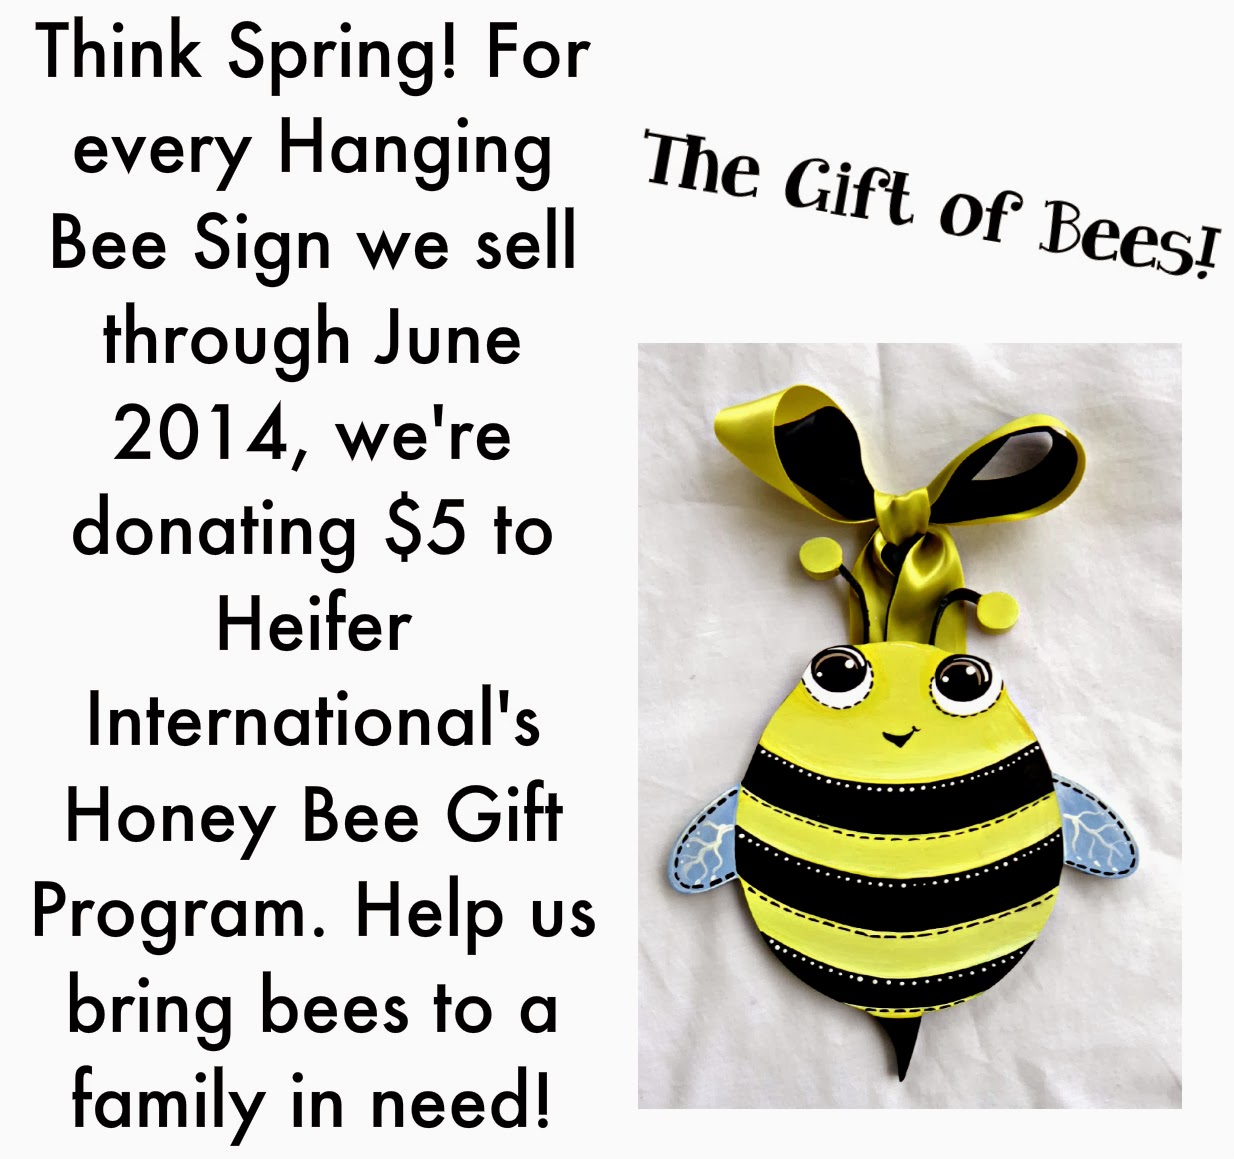 painted bumble bee signs help families in need by donating honey bee equipment and training through heifer international